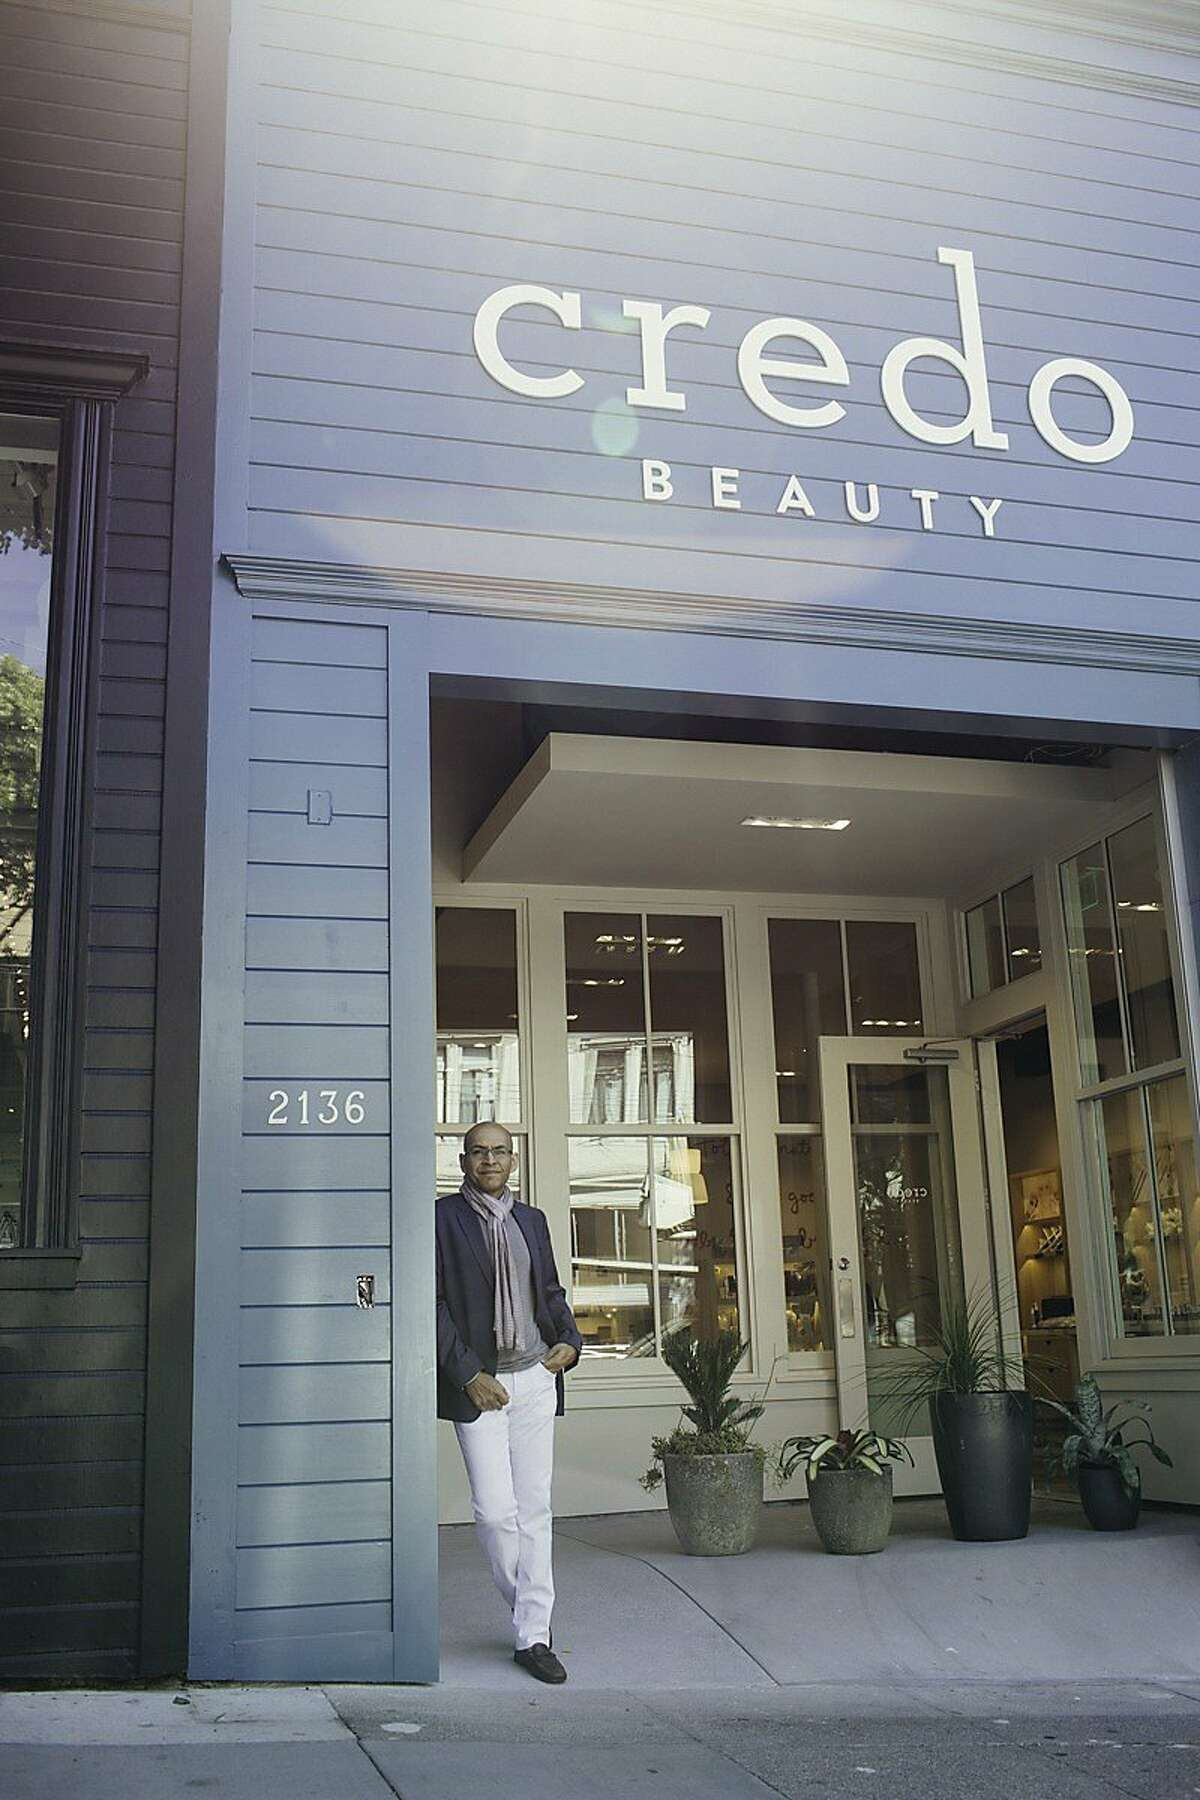 Shashi Batra is the founder and CEO of Credo, a natural beauty store which recently opened on Fillmore in Pacific Heights.